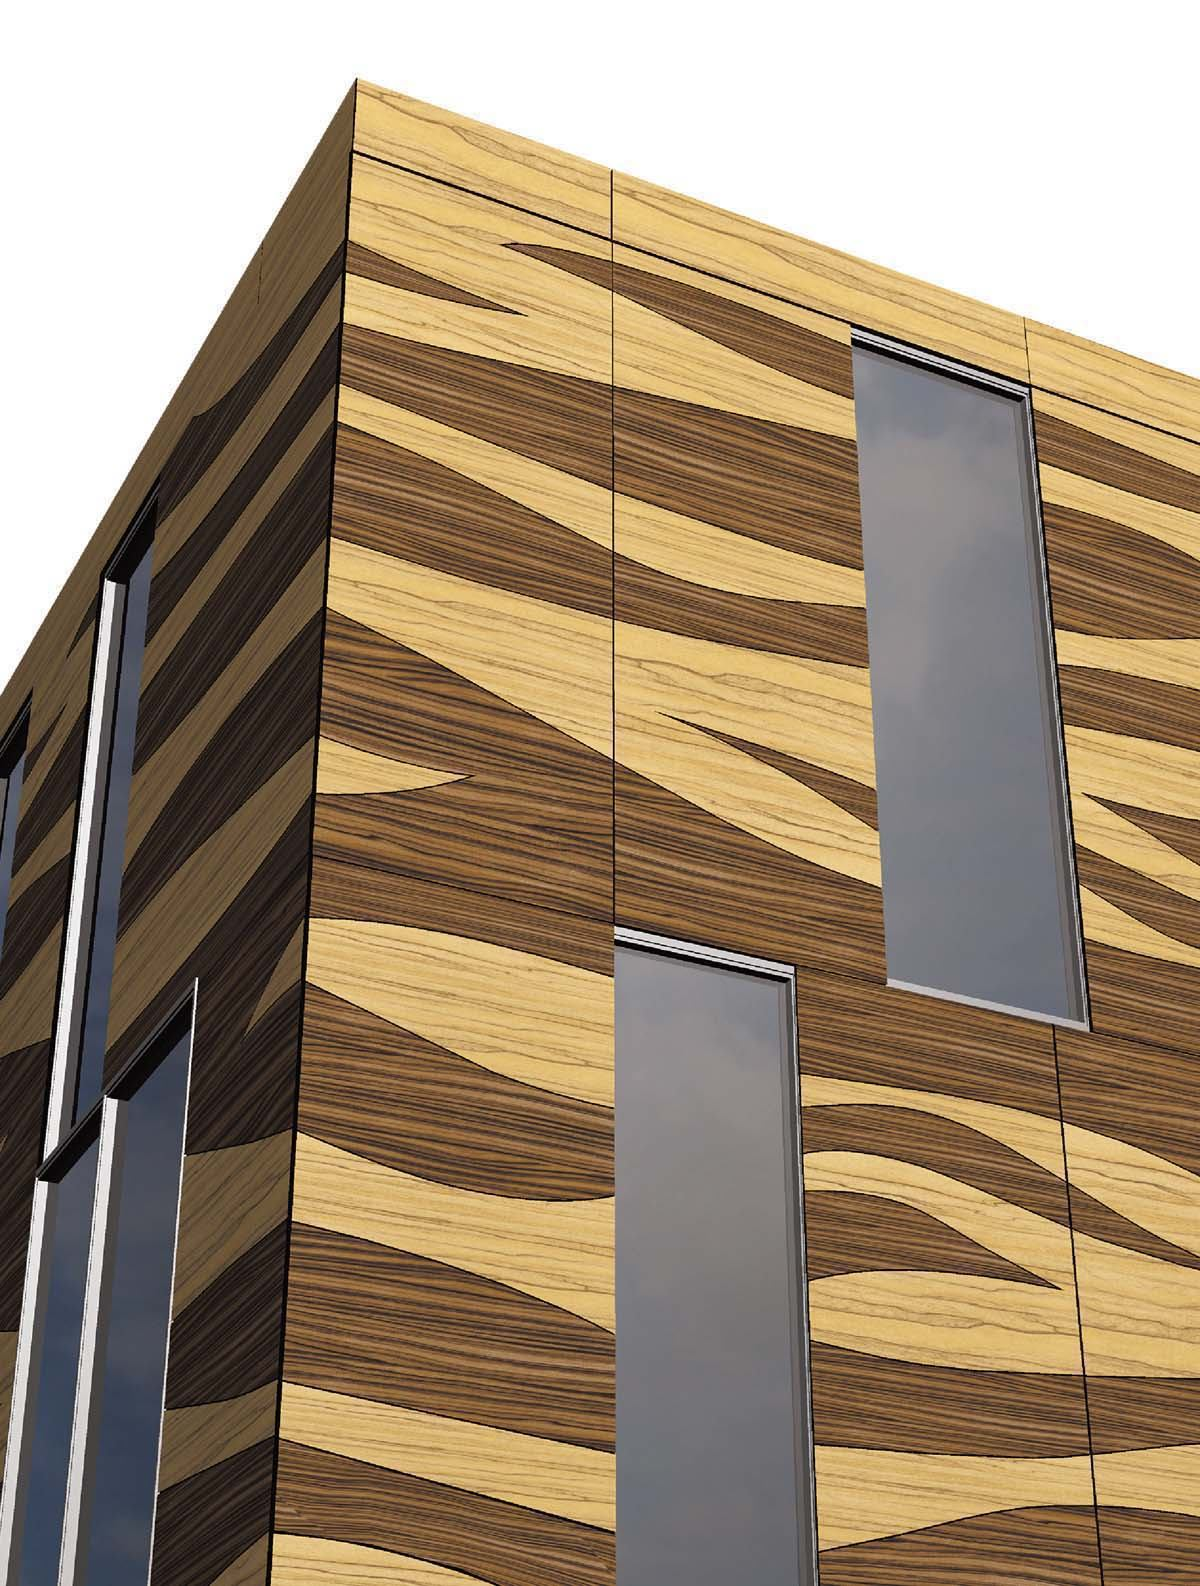 Trespa Wall Panel System : Wood decors for meteon panel system by trespa architect